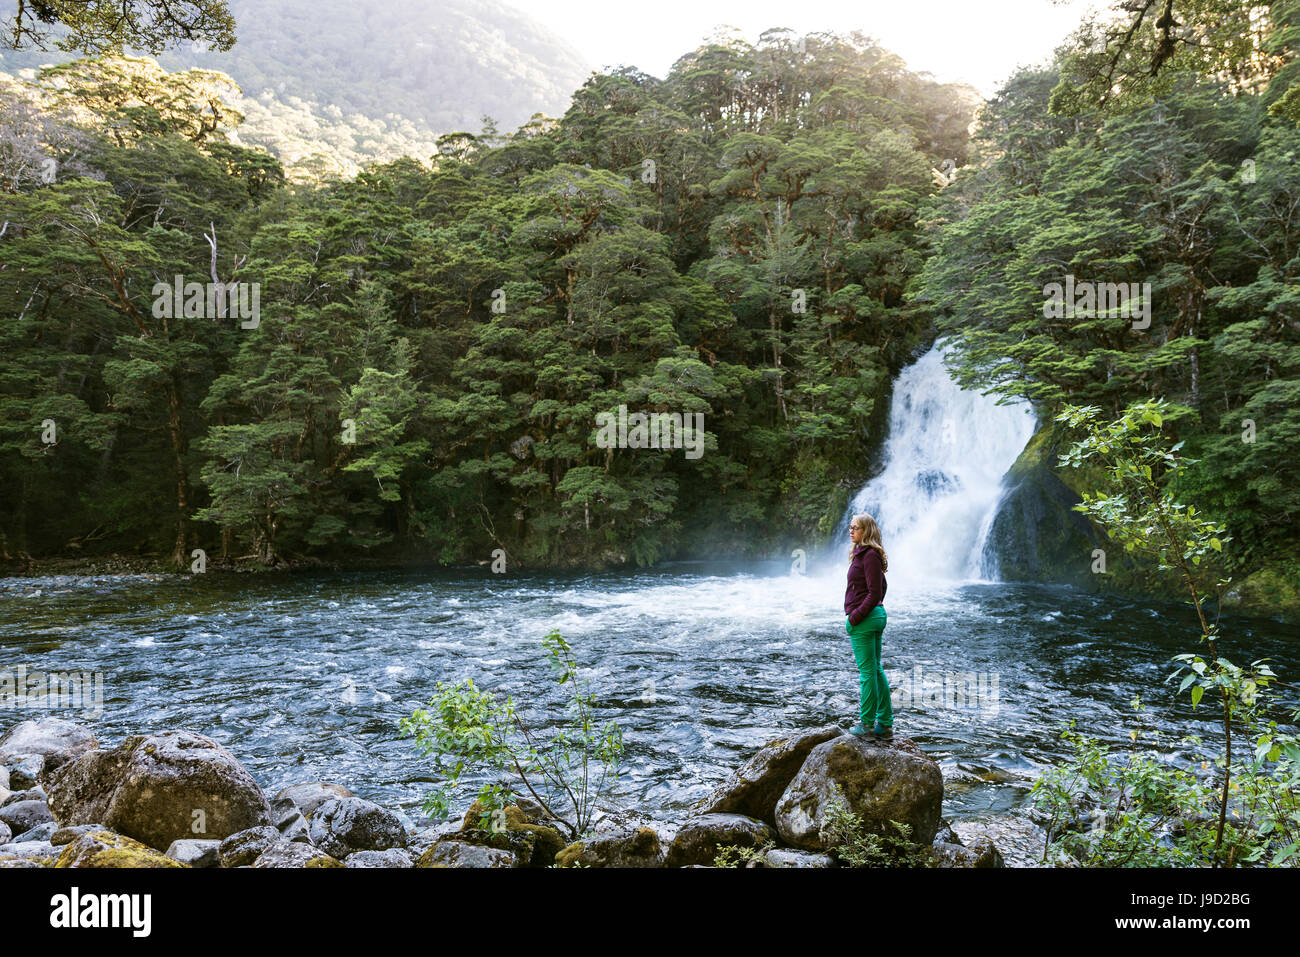 Female hiker standing on stone, waterfall in forest, Iris Burn Falls, Kepler Tack, Fiordland National Park, Southland - Stock Image